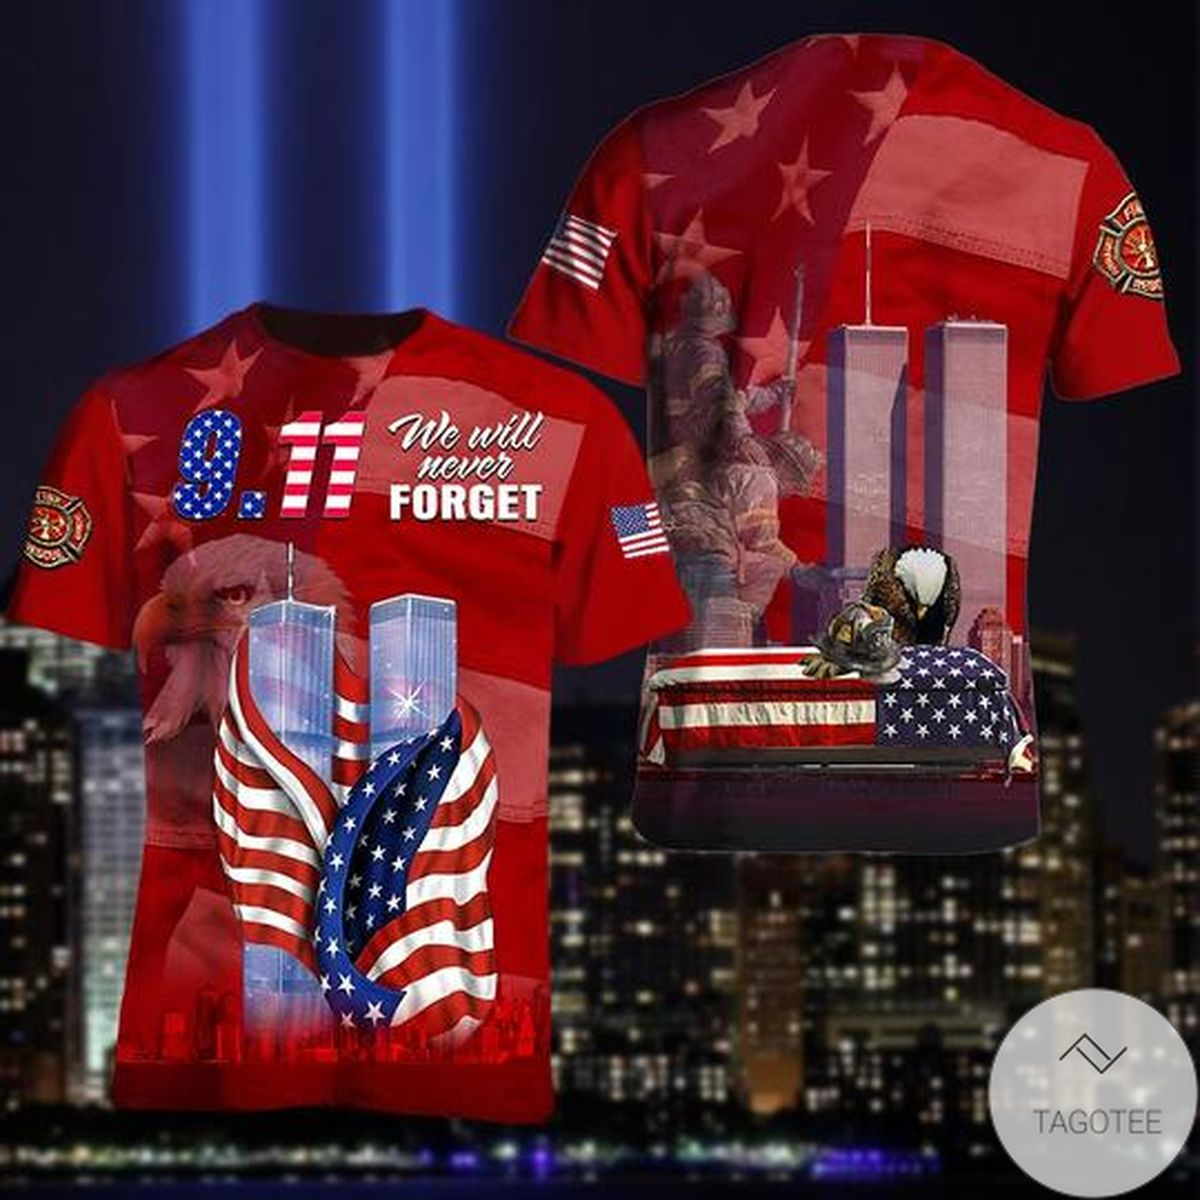 September 11 Attacks Remember 911 We Will Never Forget 3d t Shirt